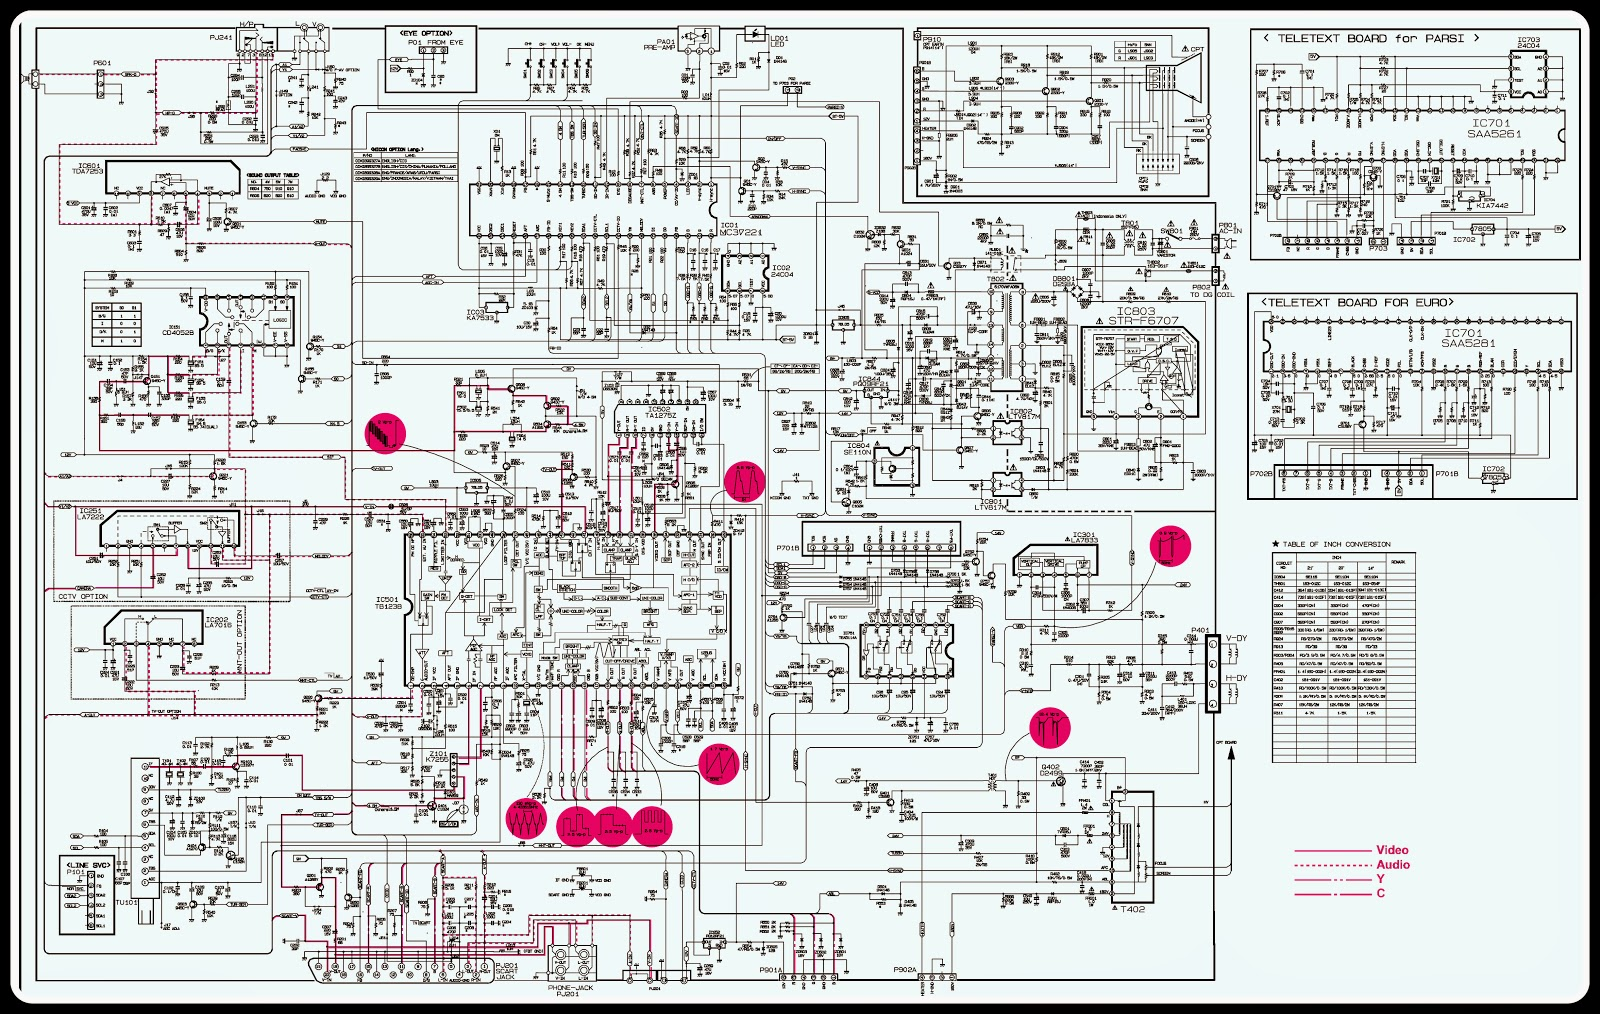 medium resolution of sanyo tv wiring diagram wiring diagram dat sanyo tv wiring diagram